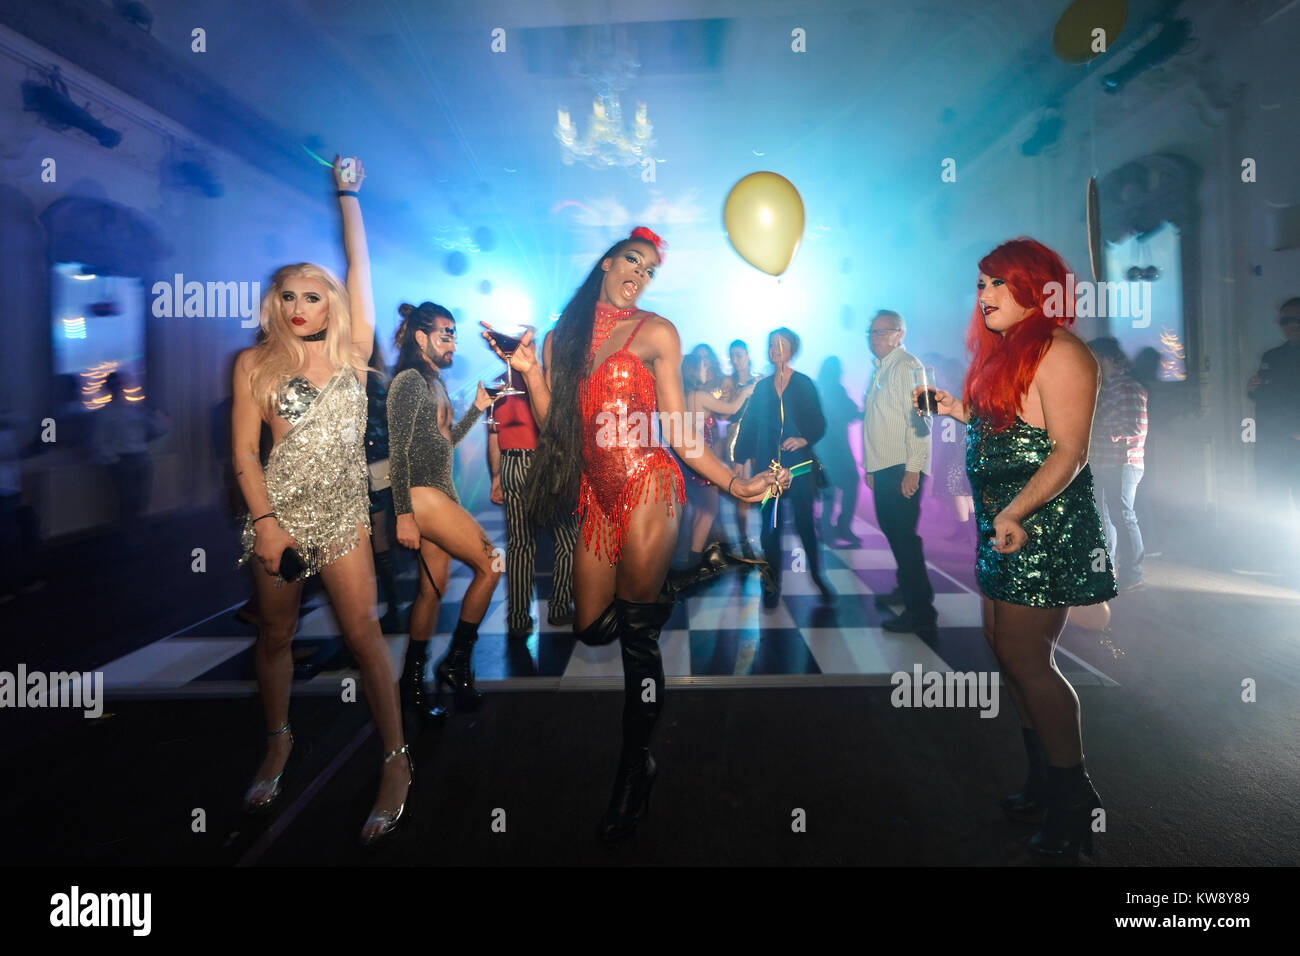 Drag Queen Club Immagini   Drag Queen Club Fotos Stock - Alamy 1908ee28f5e